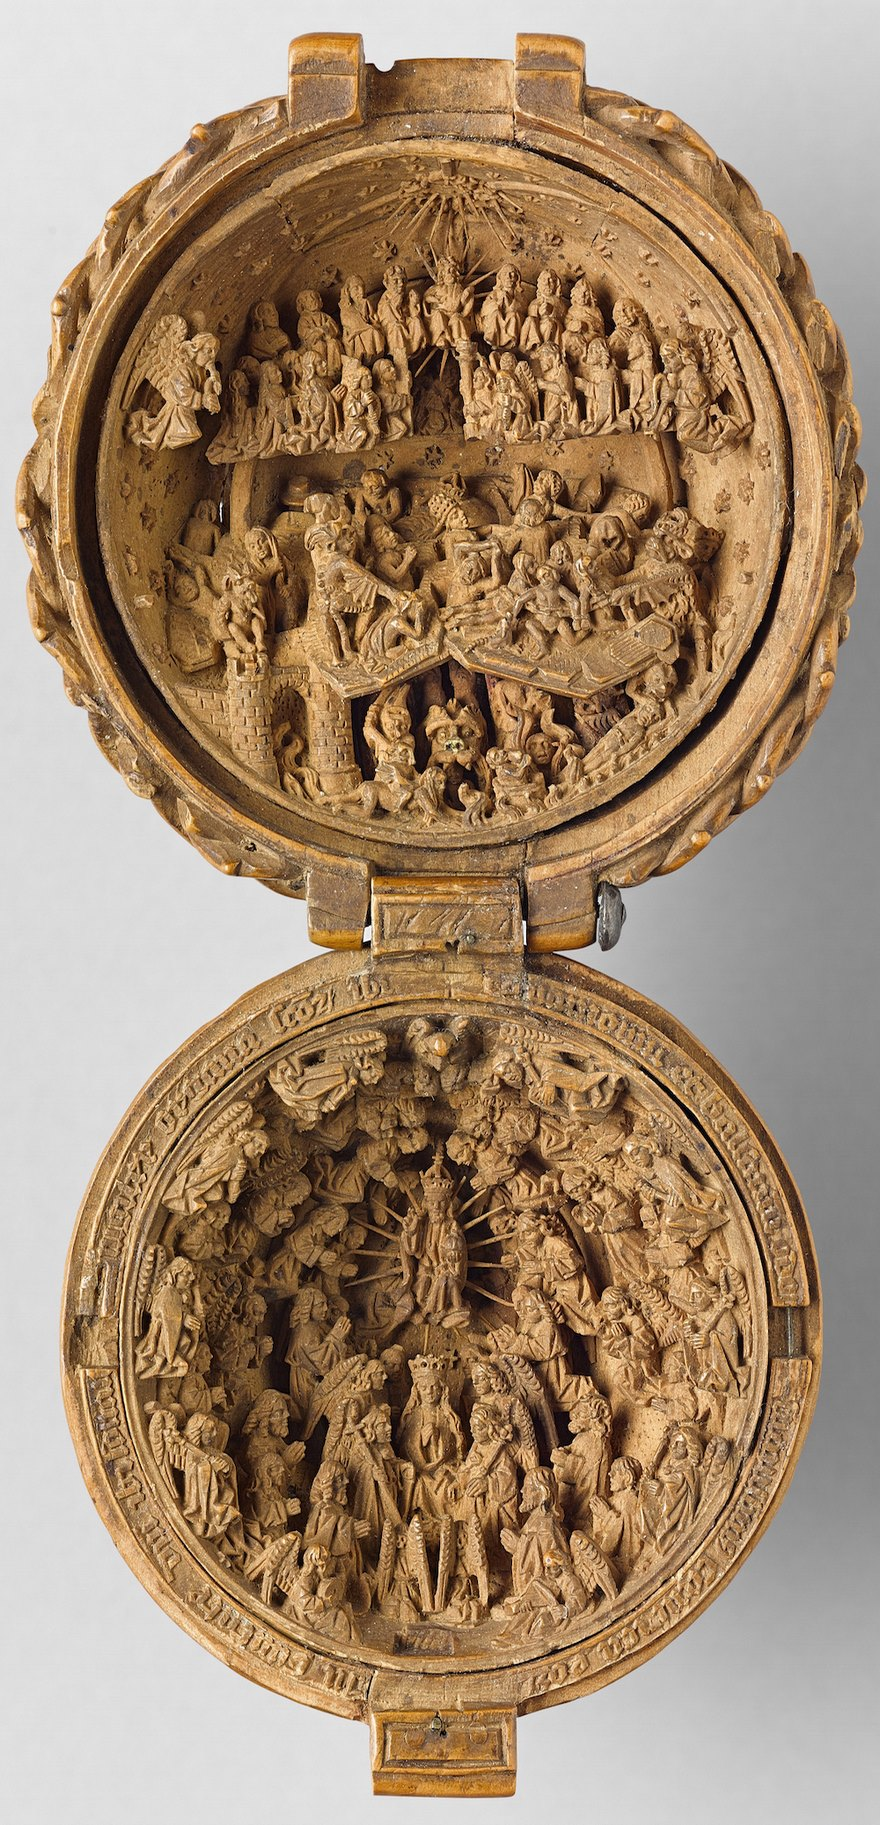 miniature boxwood carvings 16th century 2 - 16th Century Boxwood Carvings Are So Tiny That Researchers Need To Use CT-scanning For Their Research